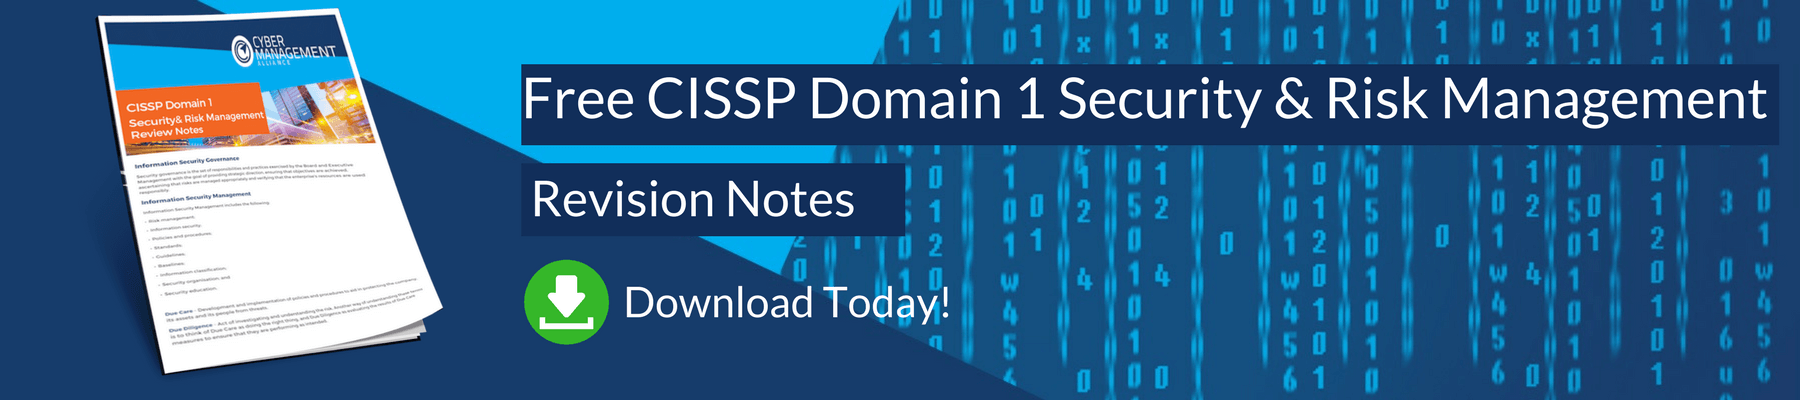 Free CISSP Domian 1 Security and Risk Management Review Notes